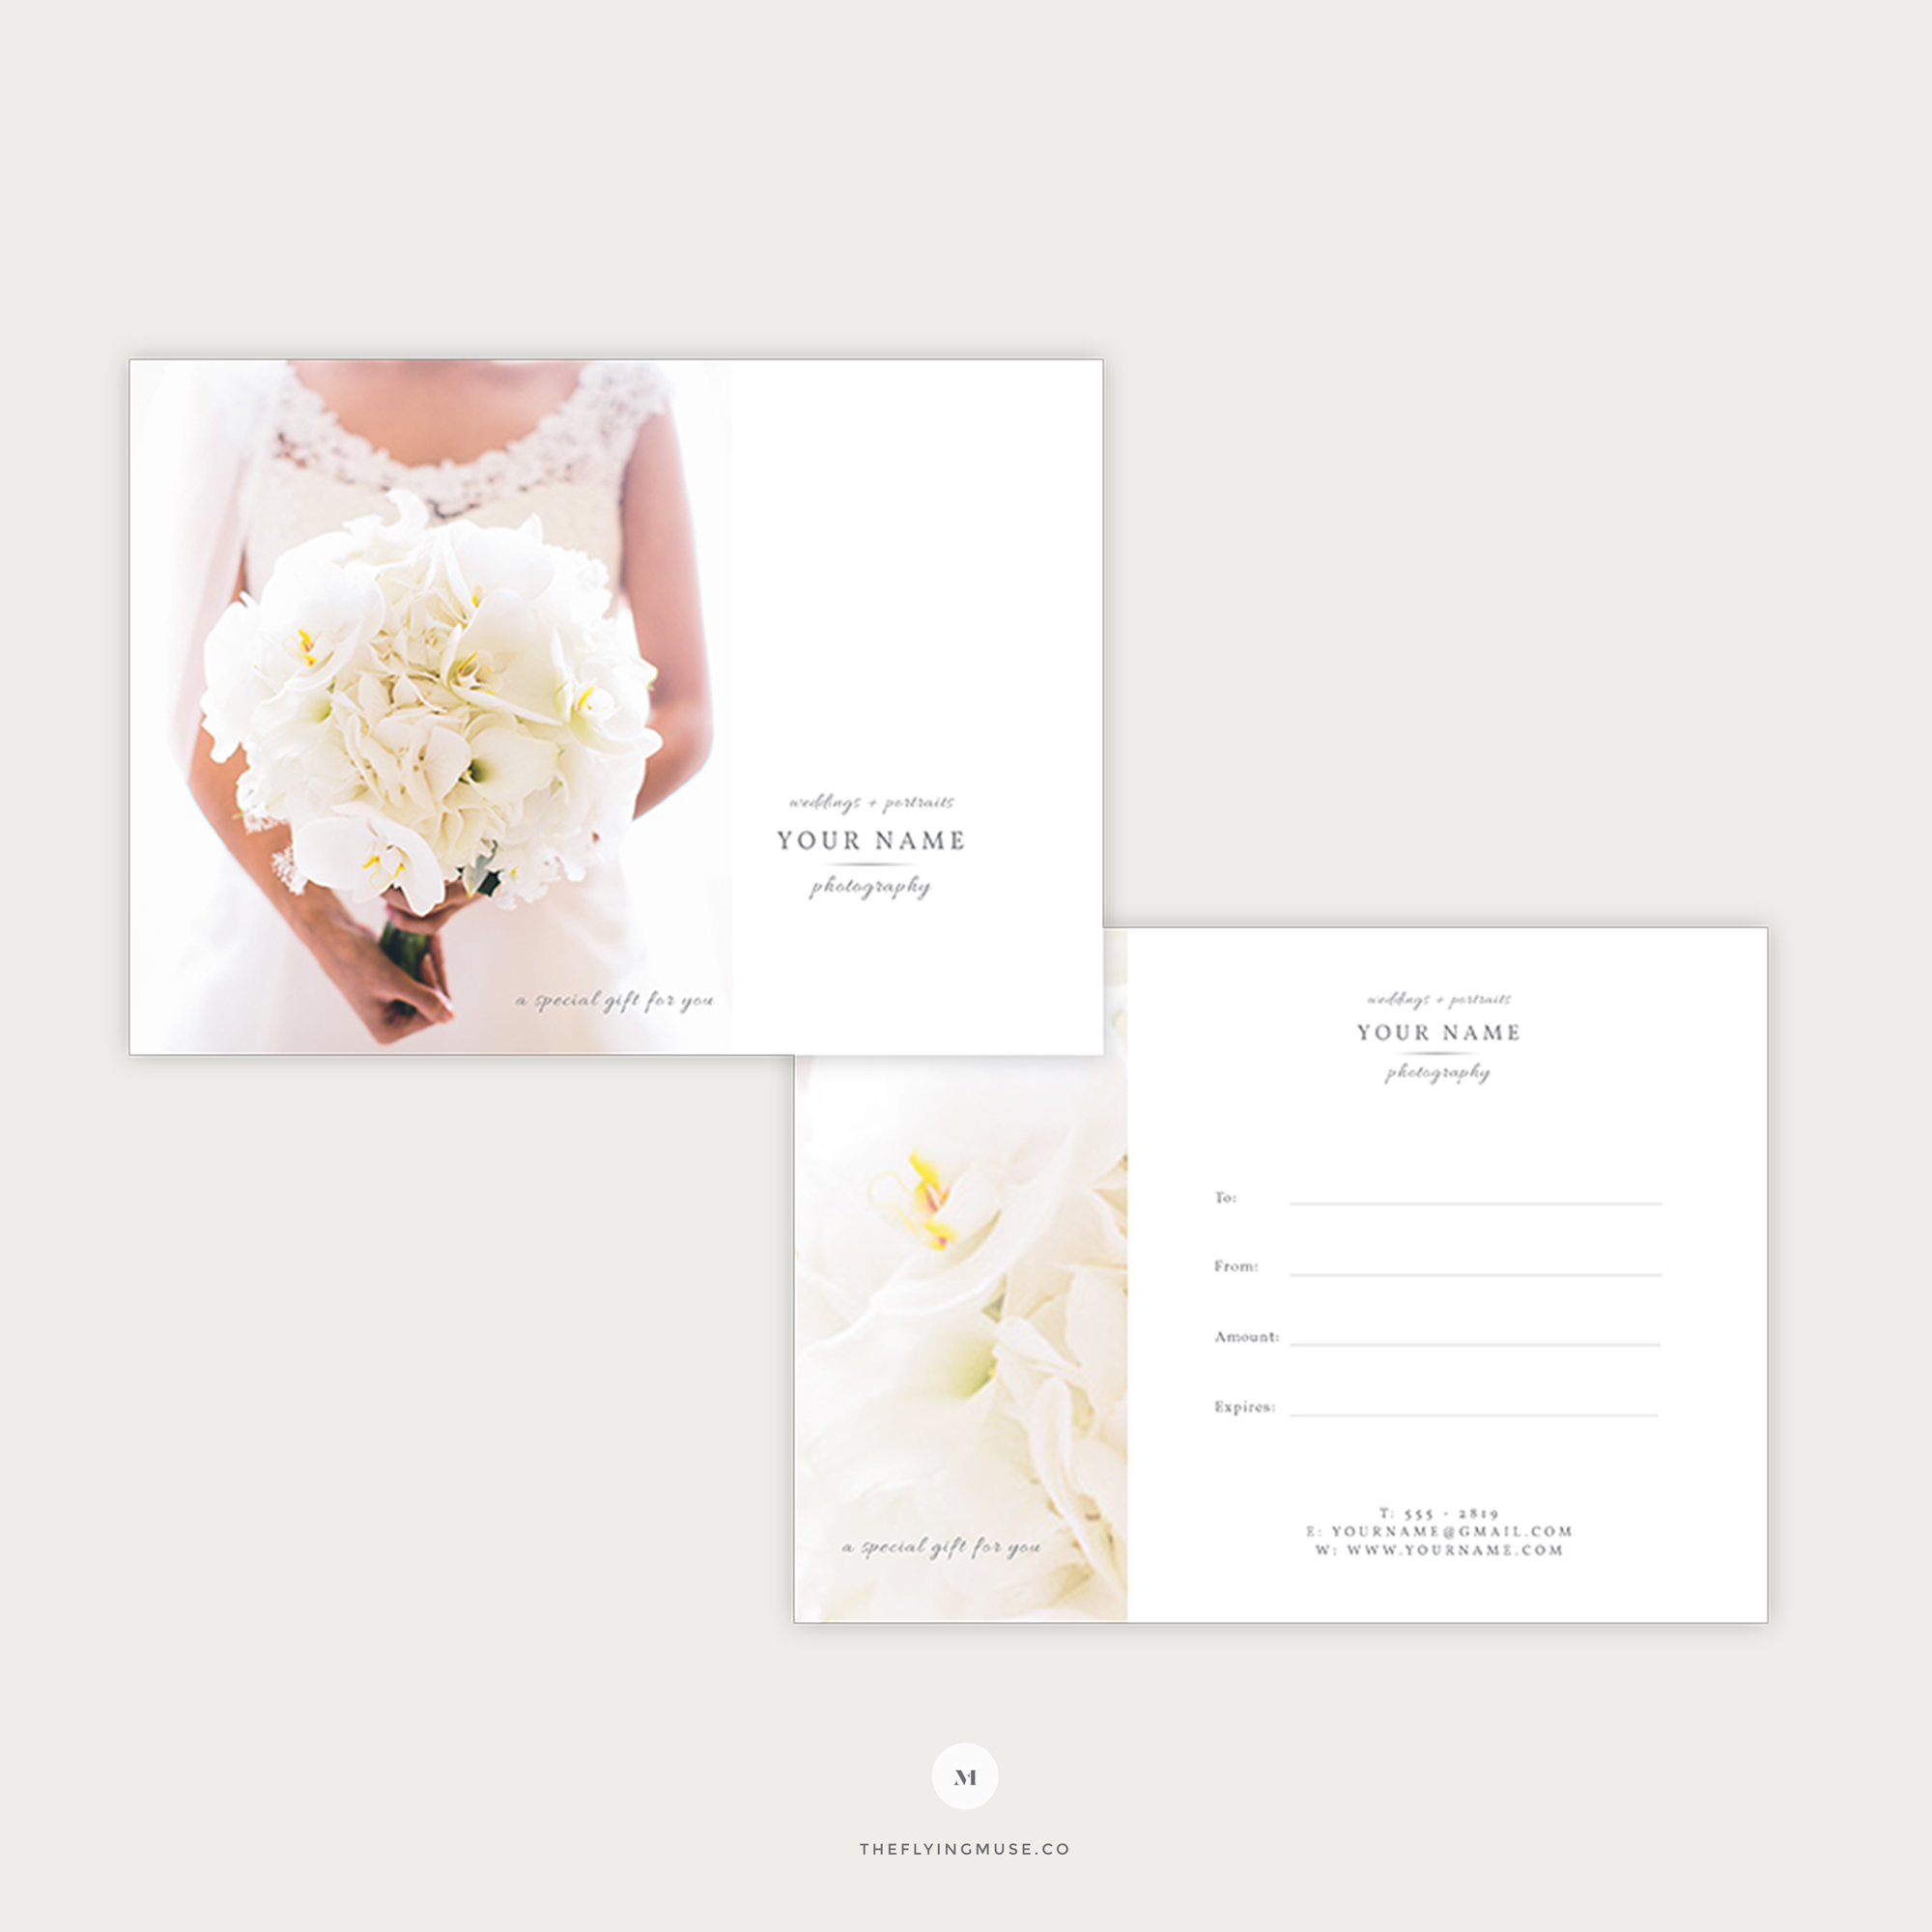 Elegant Gift Certificate Template For Wedding Photographers The